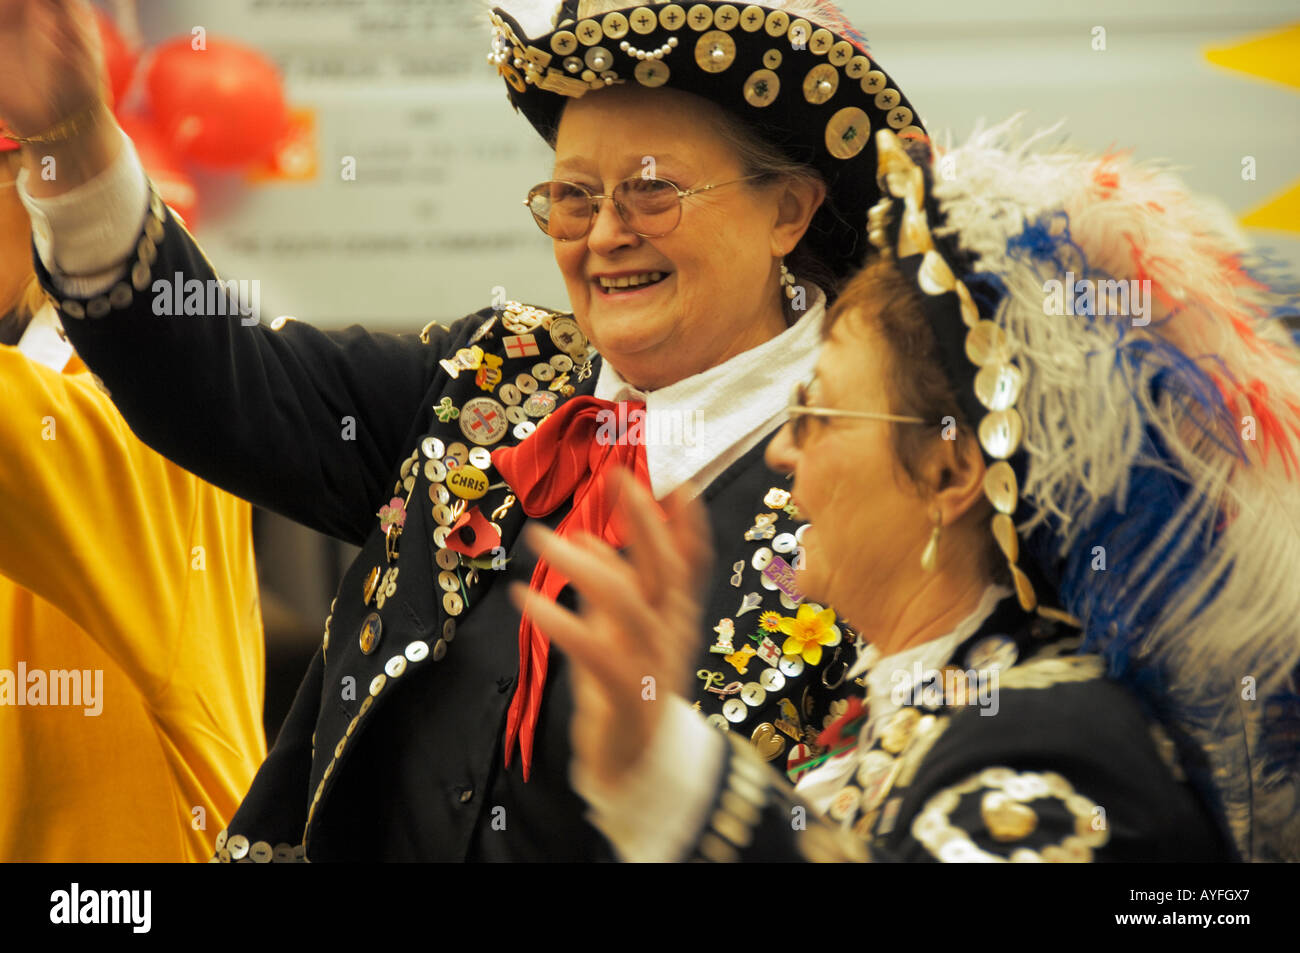 Pearly Queens at the Lord Mayors Show in the City of London, November 2006 - Stock Image